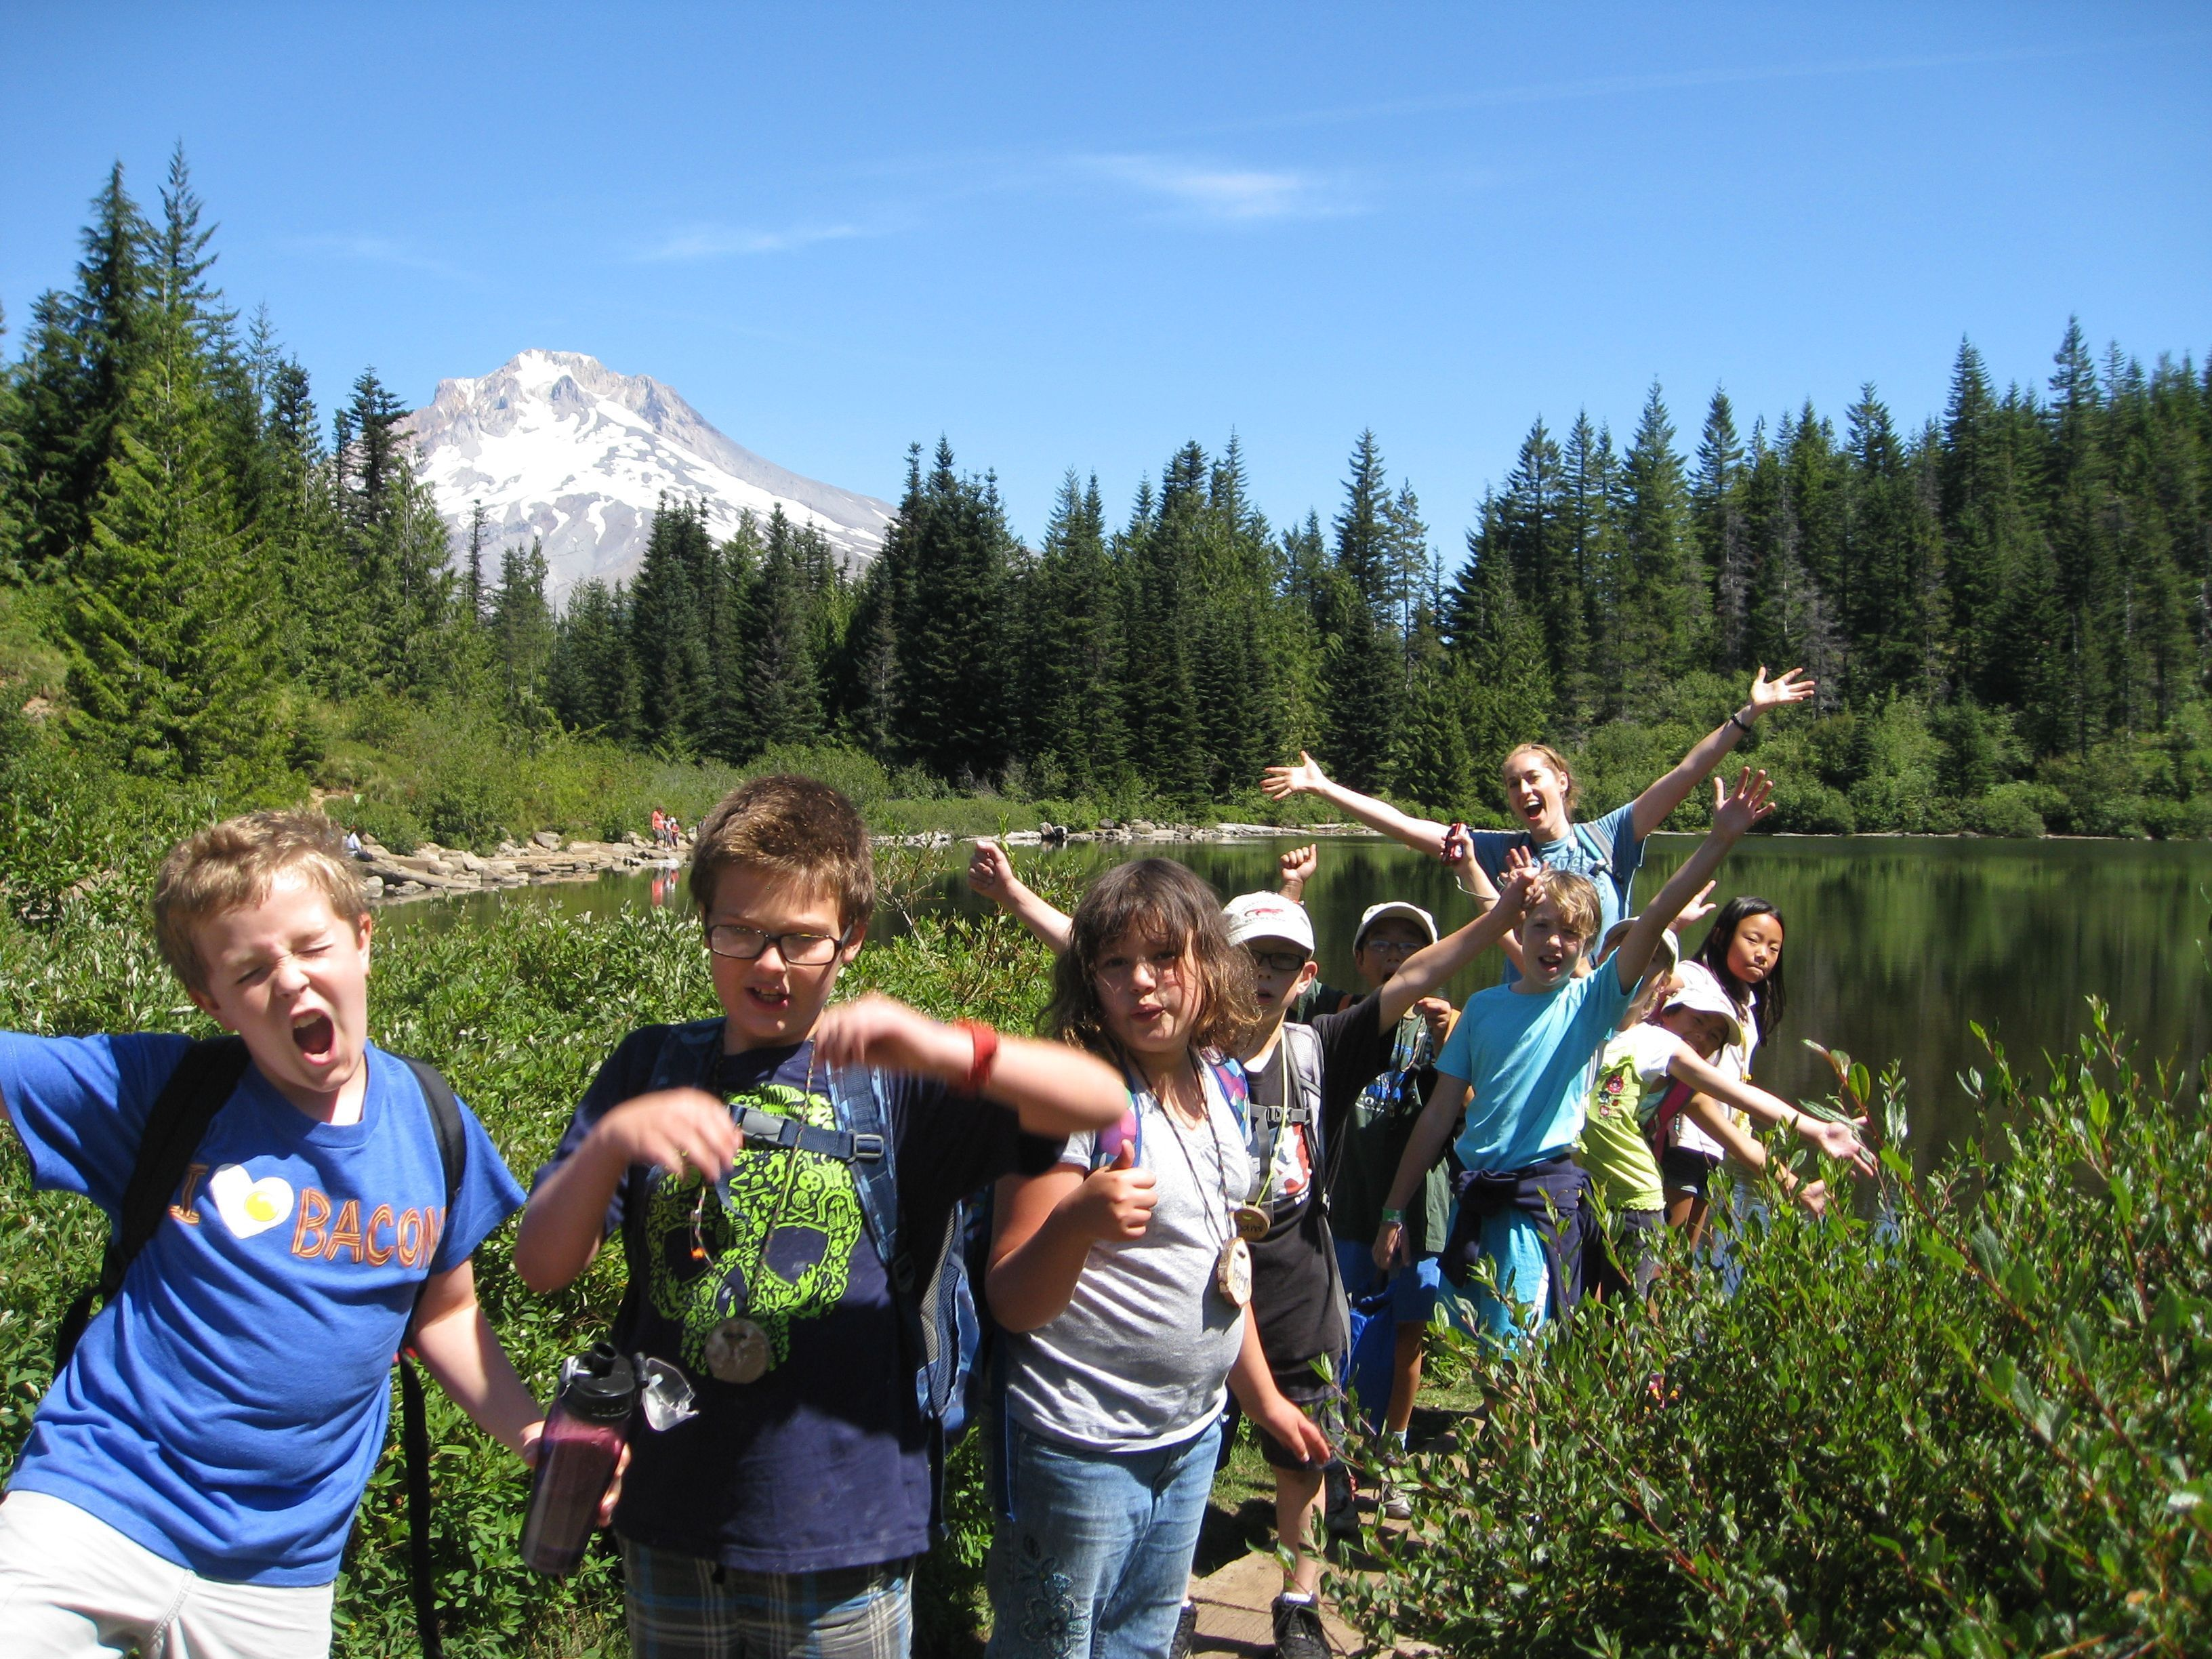 Tualatin Hills Park and Recreation District campers enjoy the great outdoors.